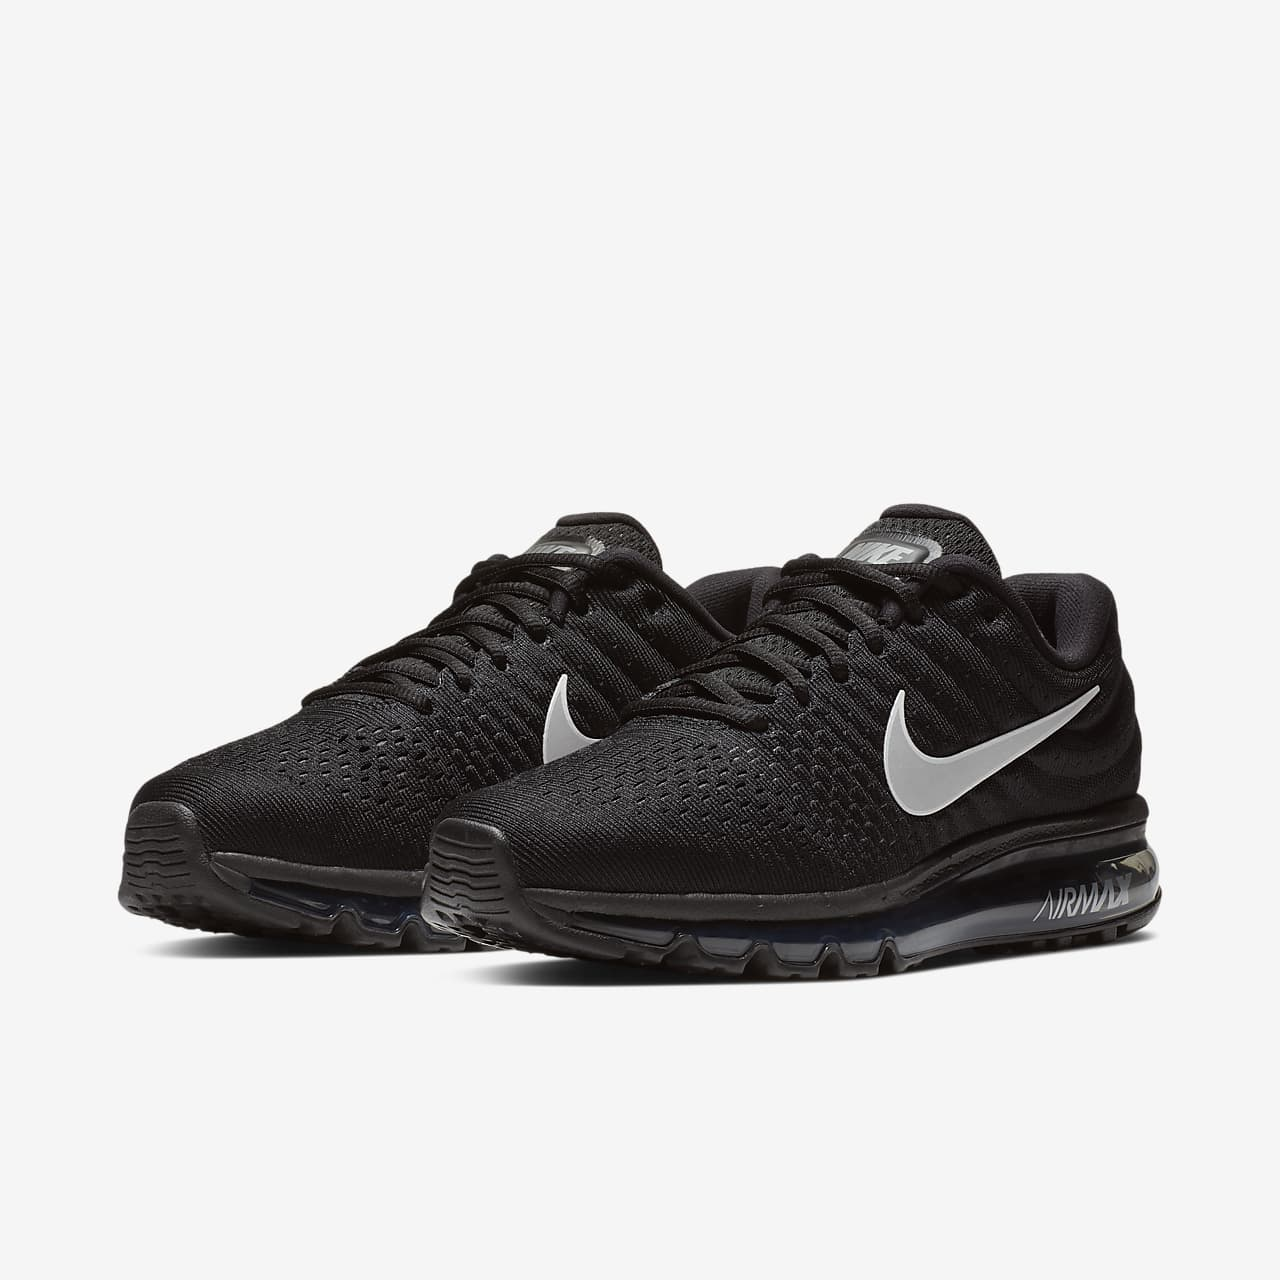 mens nike air max black shoes